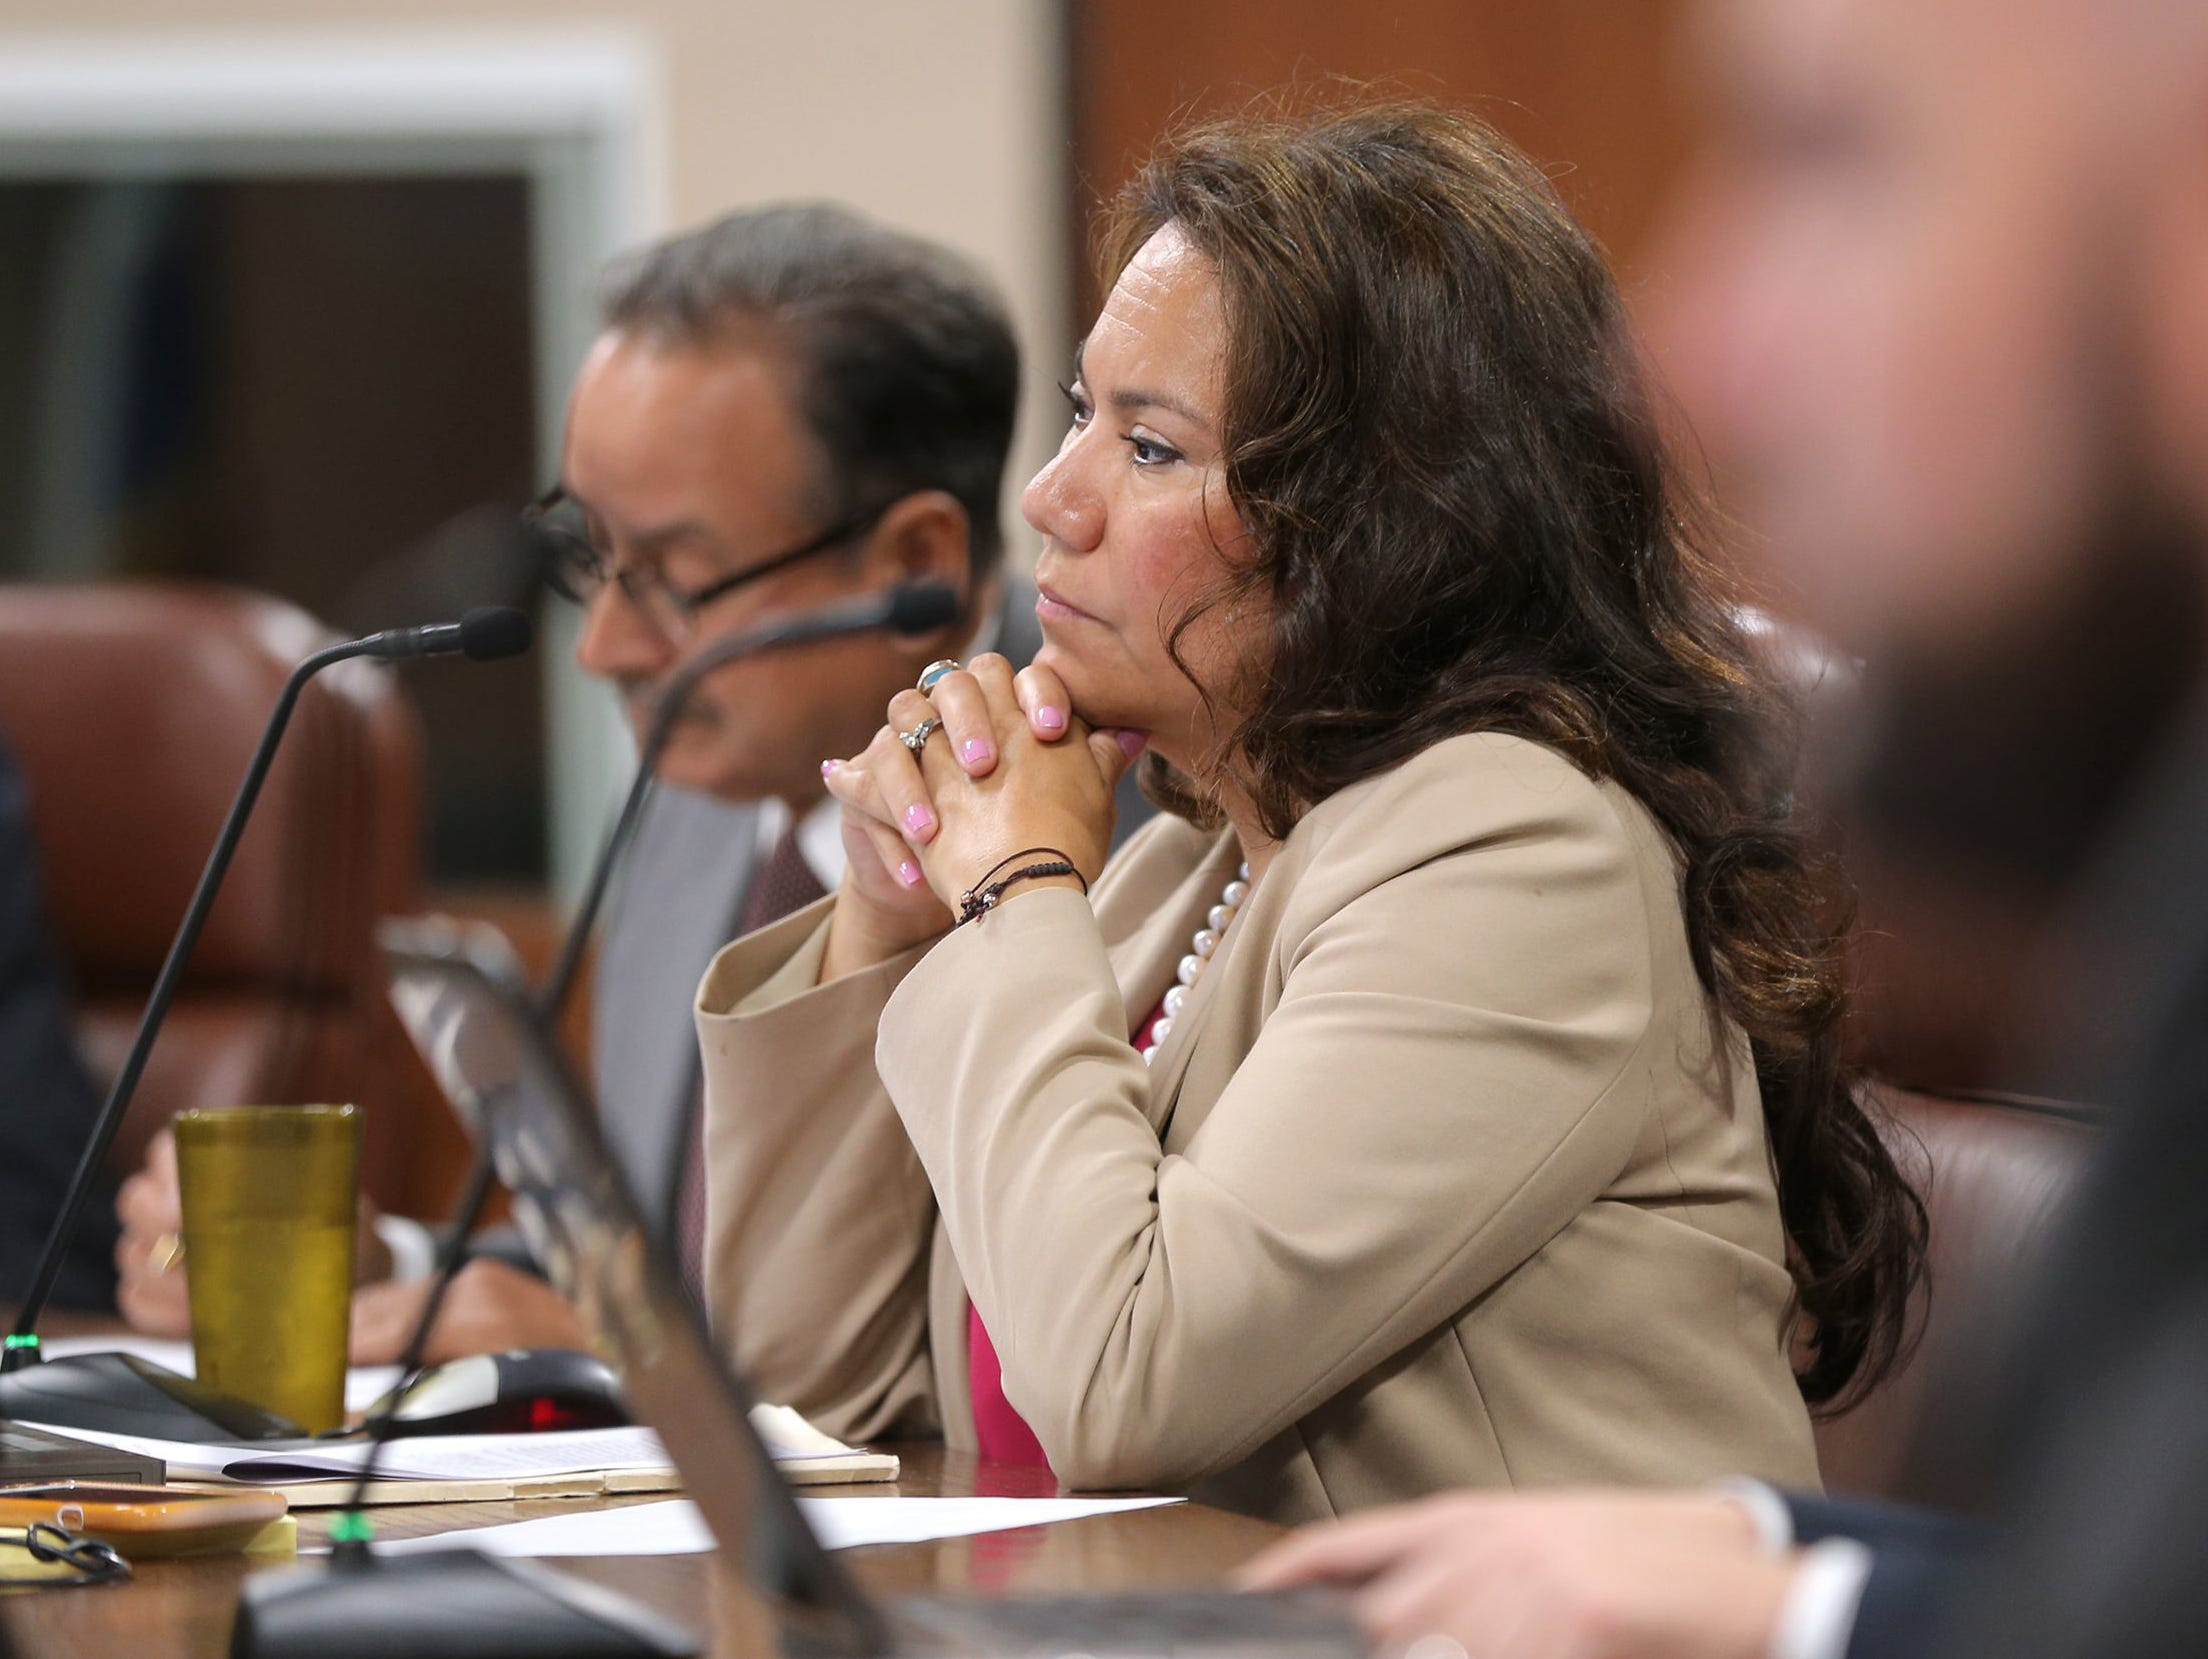 El Paso County Judge Veronica Escobar said she believes the county needs to do what it can to protect University Medical Center as the only safety net for people without healthcare.